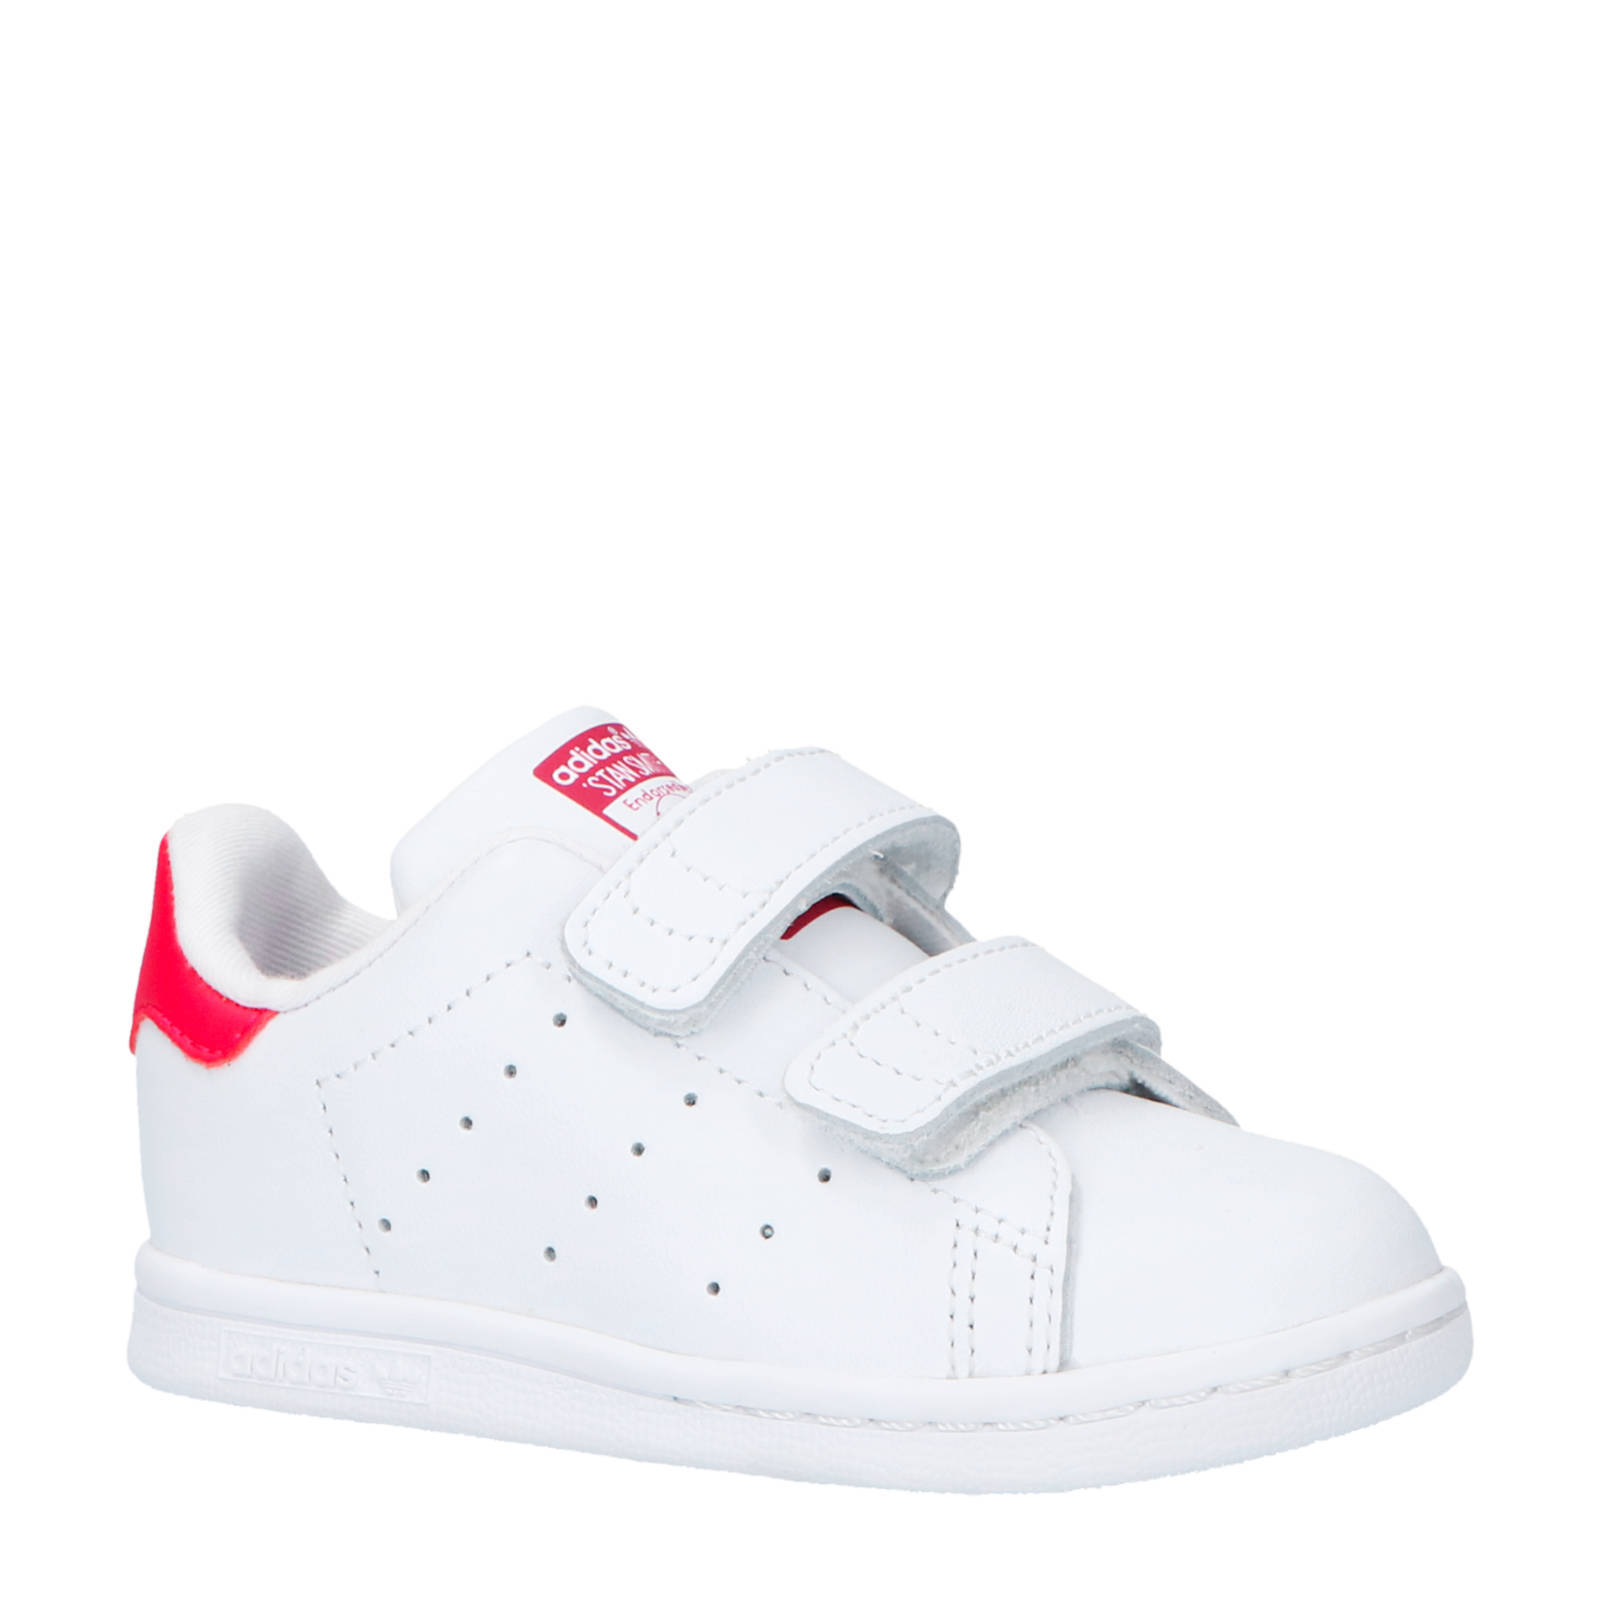 adidas Originals Stan Smith CF I leren sneakers witroze